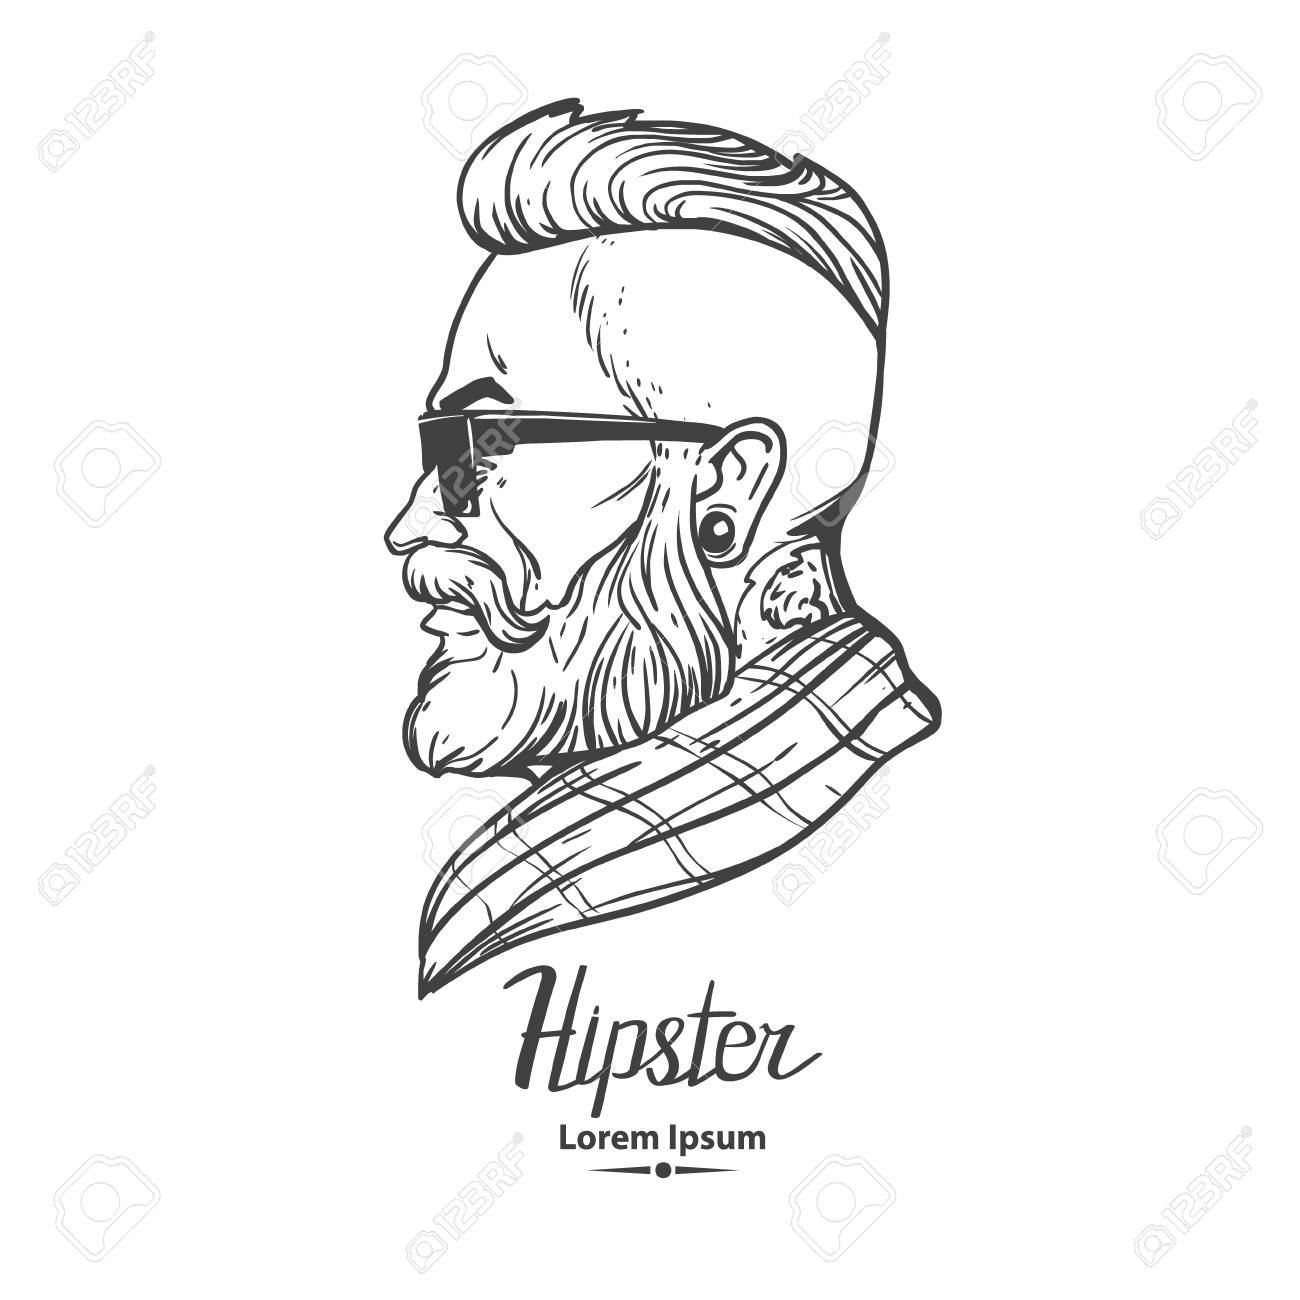 1300x1300 Hipster Label Badge Simple Iilustration, Man, Profile View Royalty